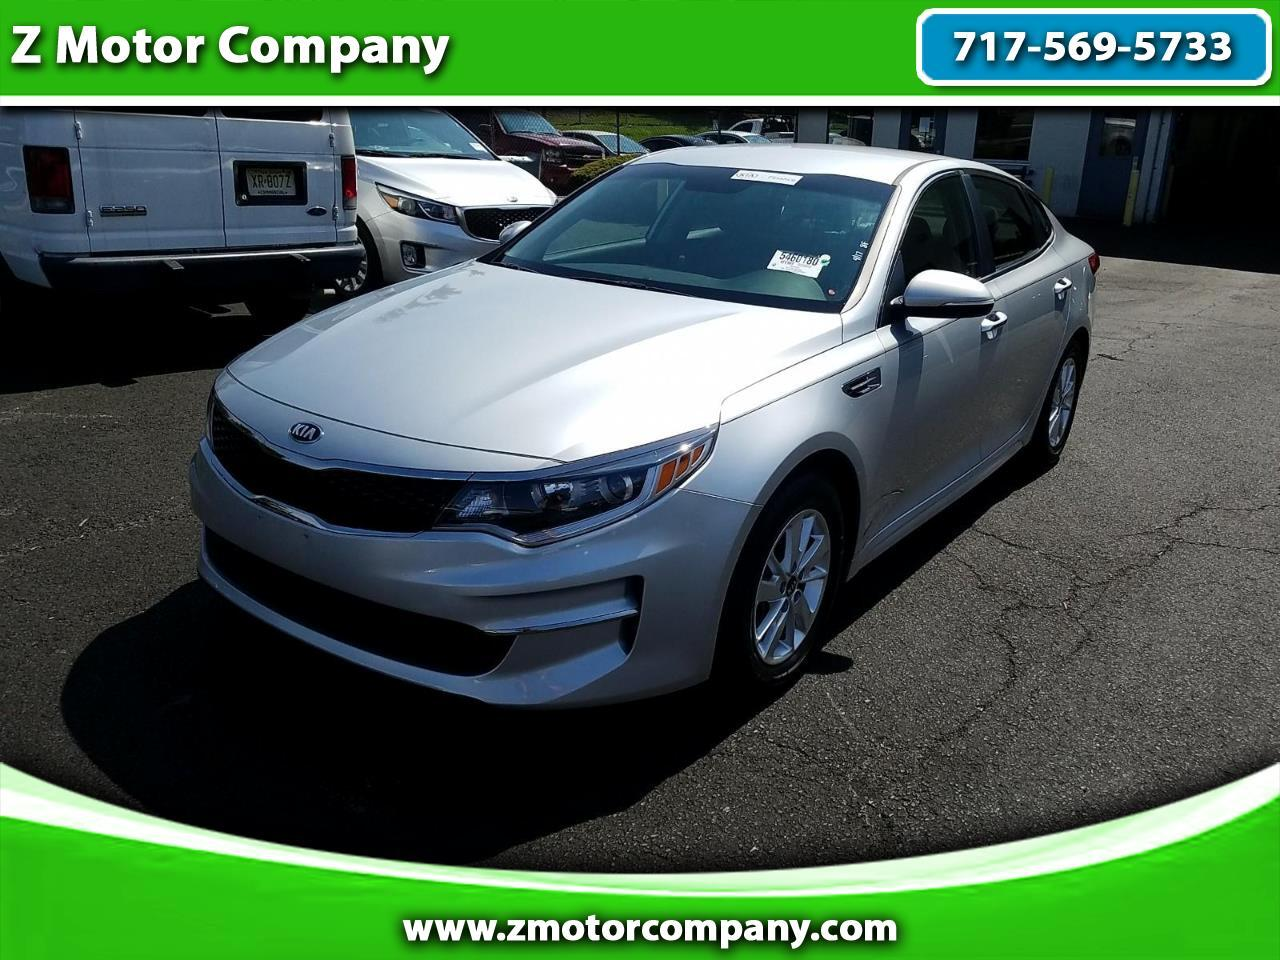 2016 Kia Optima 4dr Sdn LX